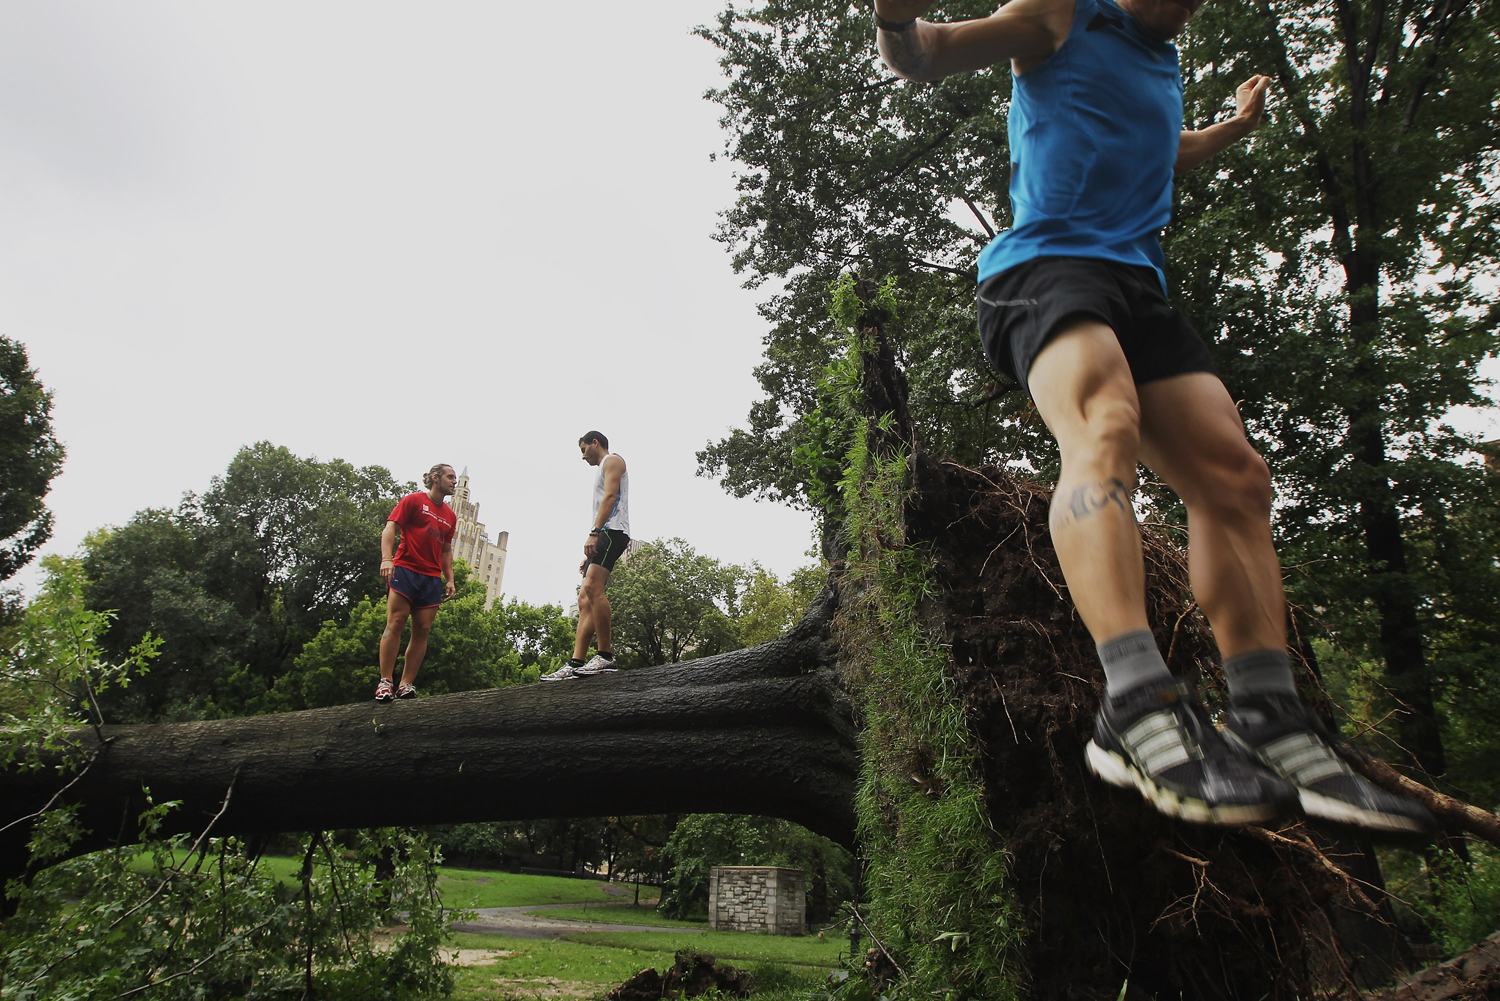 August 27, 2011, New York, NY. Miguel Aguado, left, and Claus Espinosa, center, stand on a downed tree as Raul Hernandez leaps off it, after Hurricane Irene dumped more than six inches of rain in New York City. The hurricane hit New York as a Category 1 storm before being downgraded to a tropical storm.